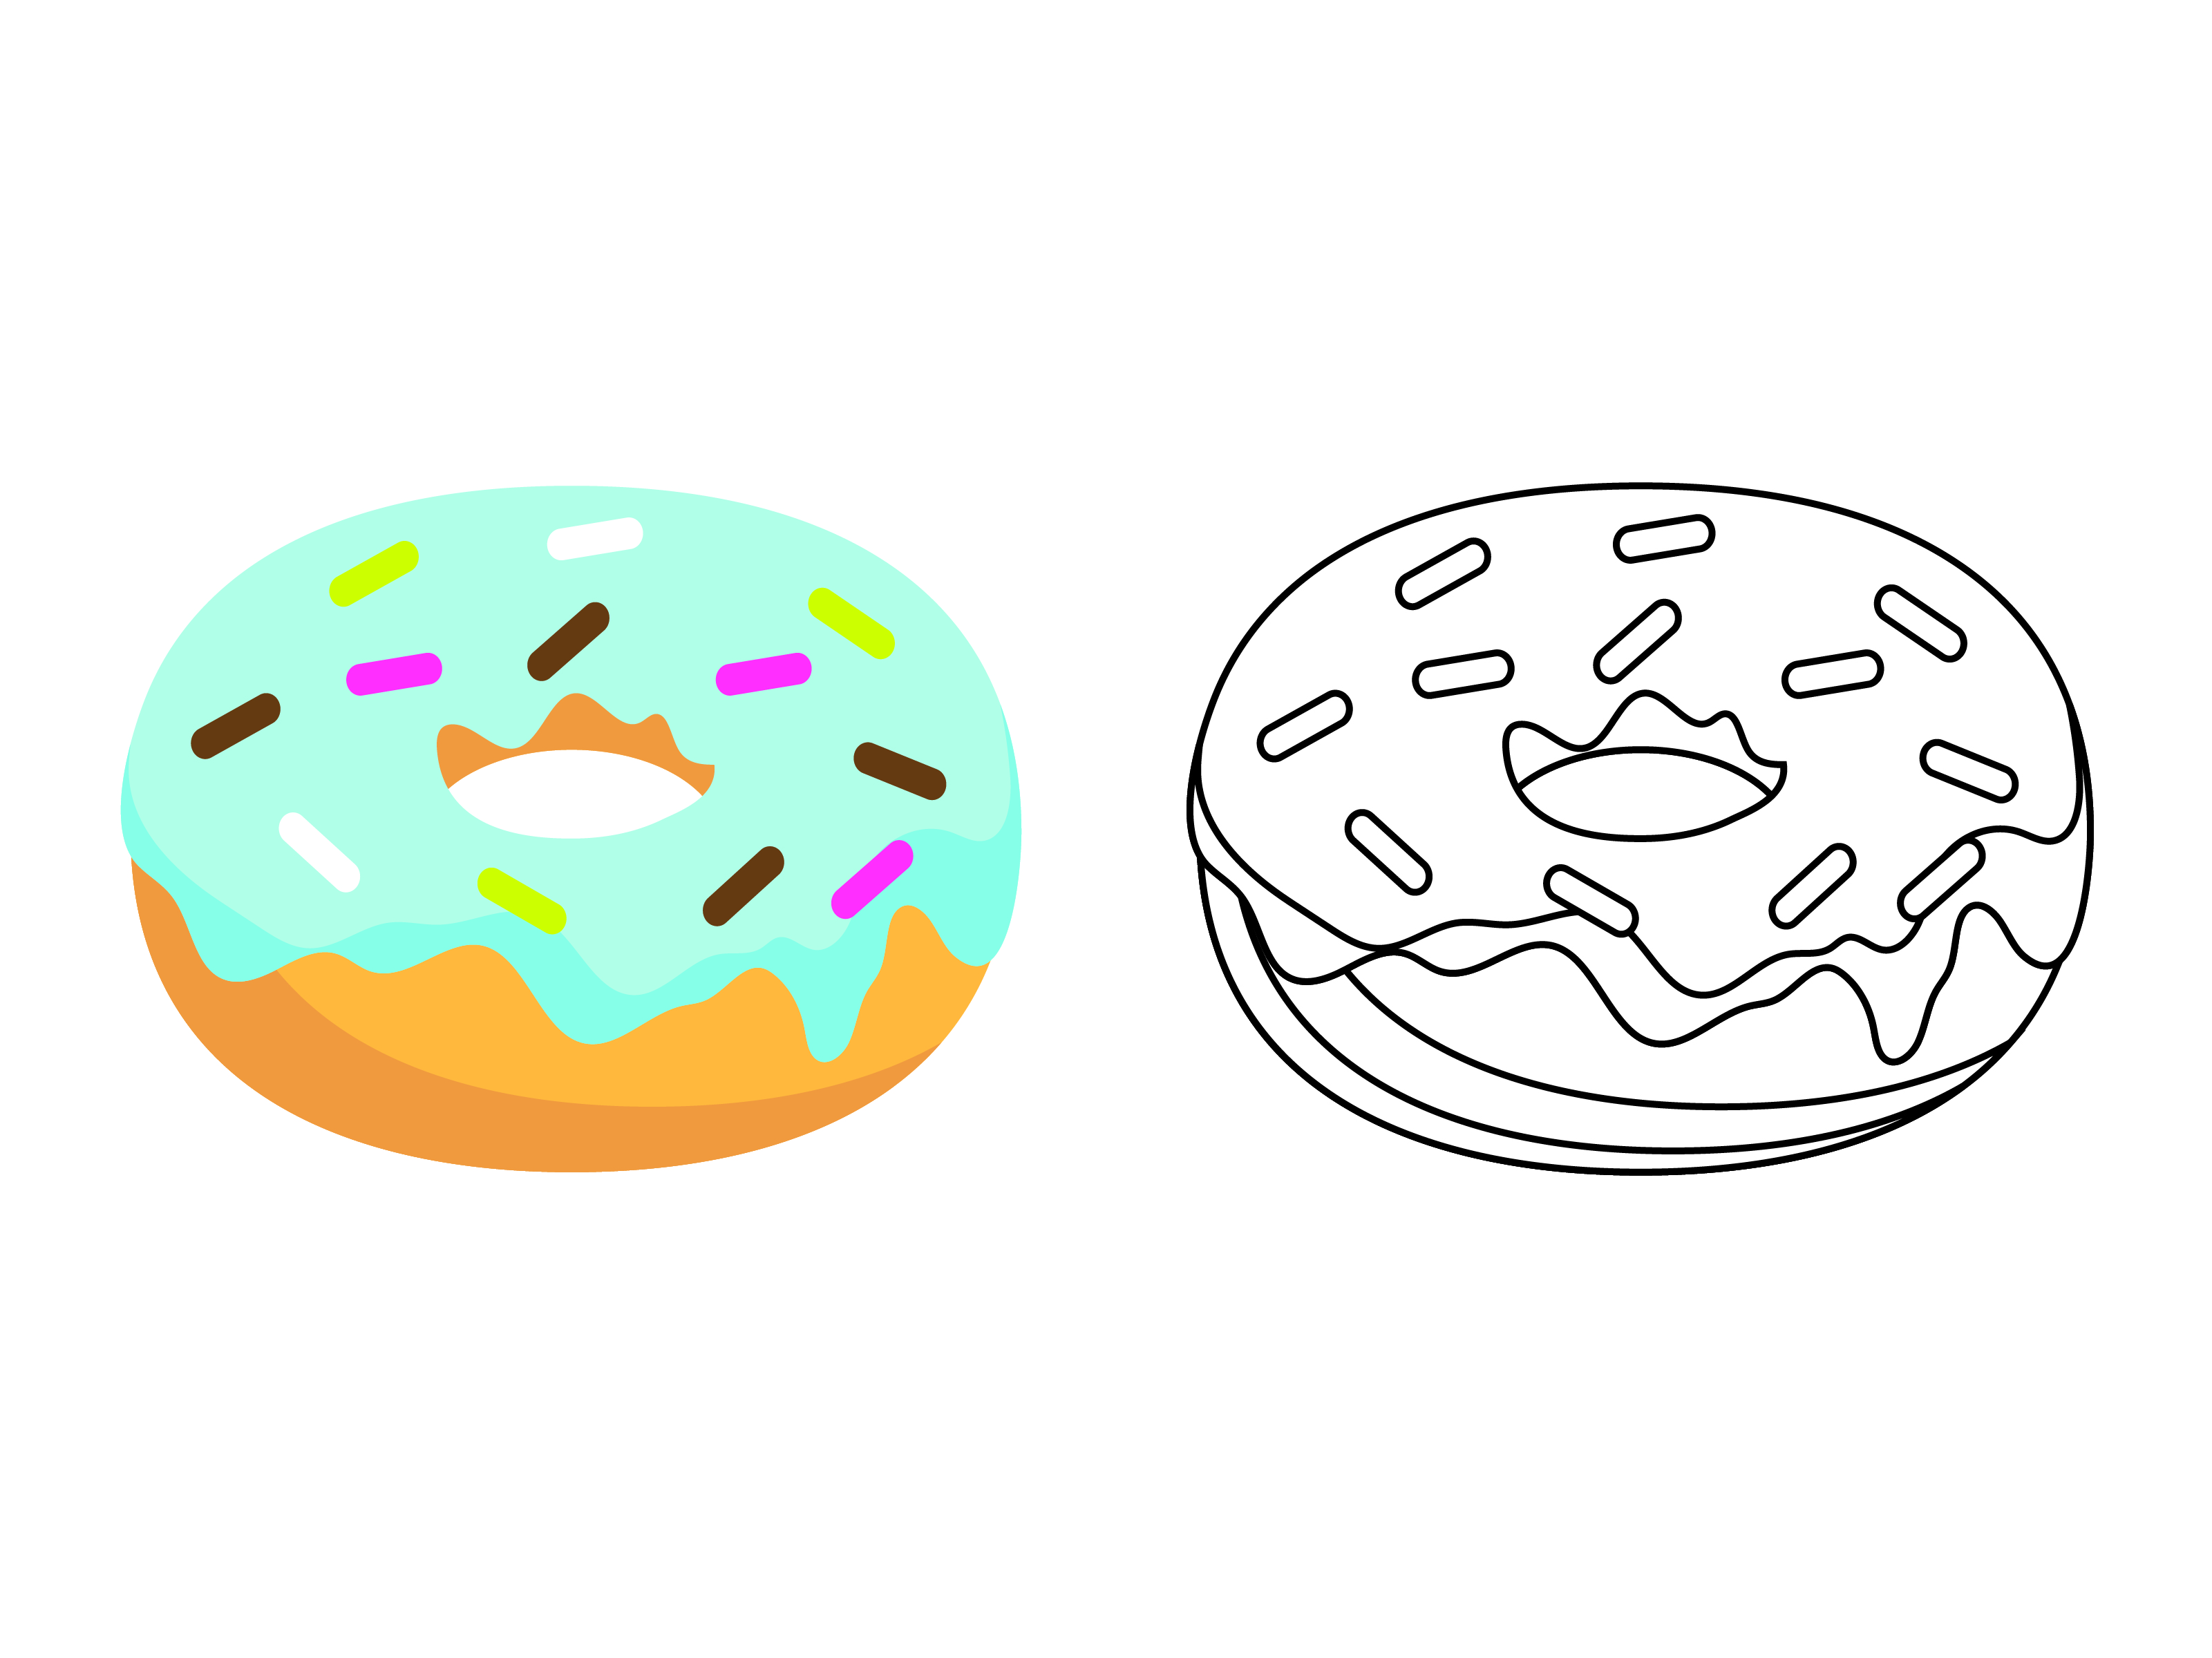 Download Free Blue Donuts Kids Coloring Vector Design Graphic By 1tokosepatu for Cricut Explore, Silhouette and other cutting machines.